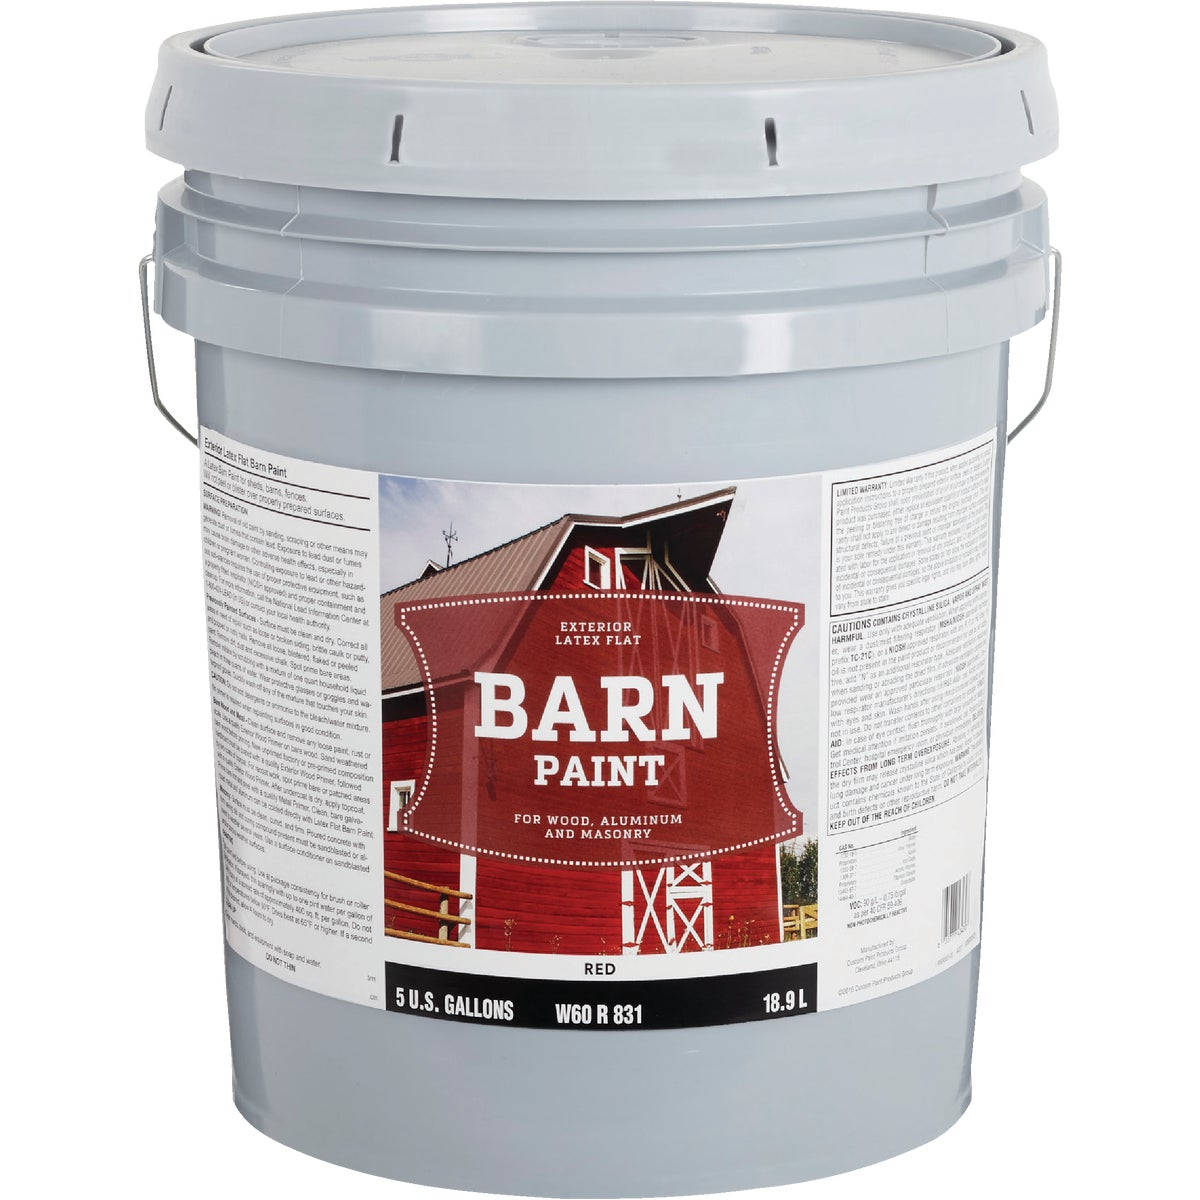 FLAT LTX RED BARN PAINT - W60R00732-20 by Do it Best